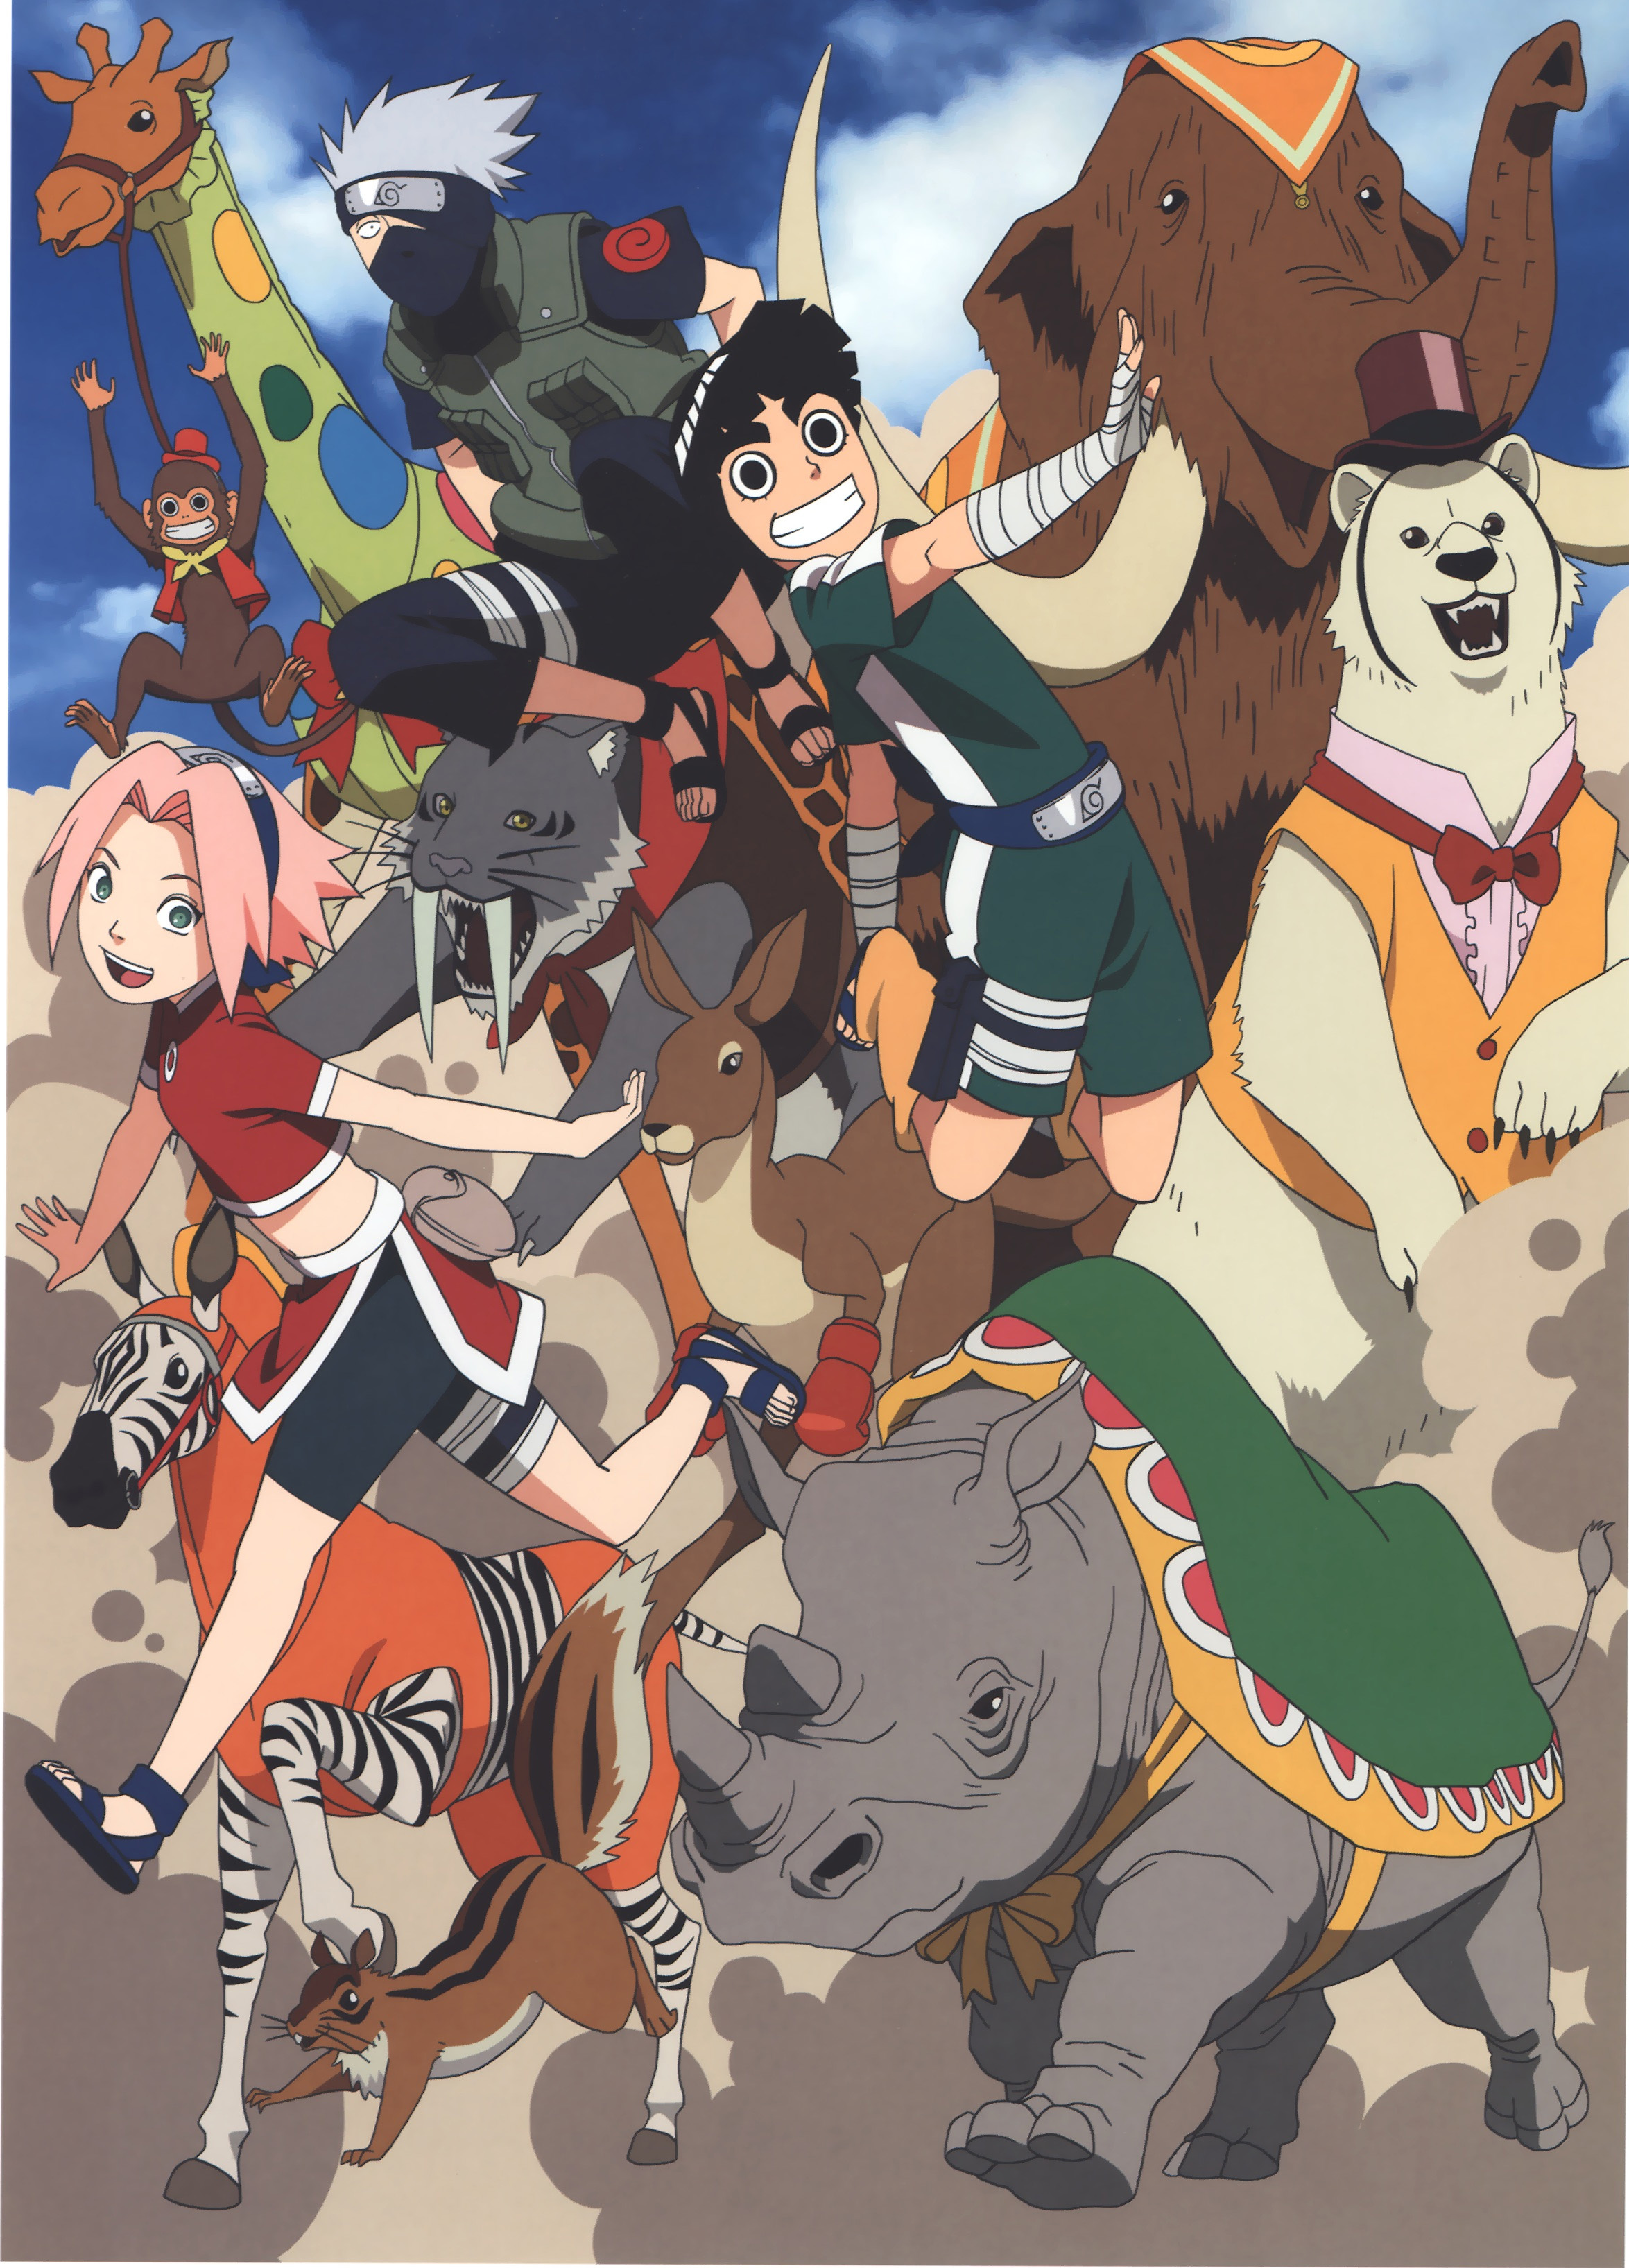 Naruto the Movie 3 Guardians of the Crescent Moon Kingdom Art with Leaf Ninja and Animals